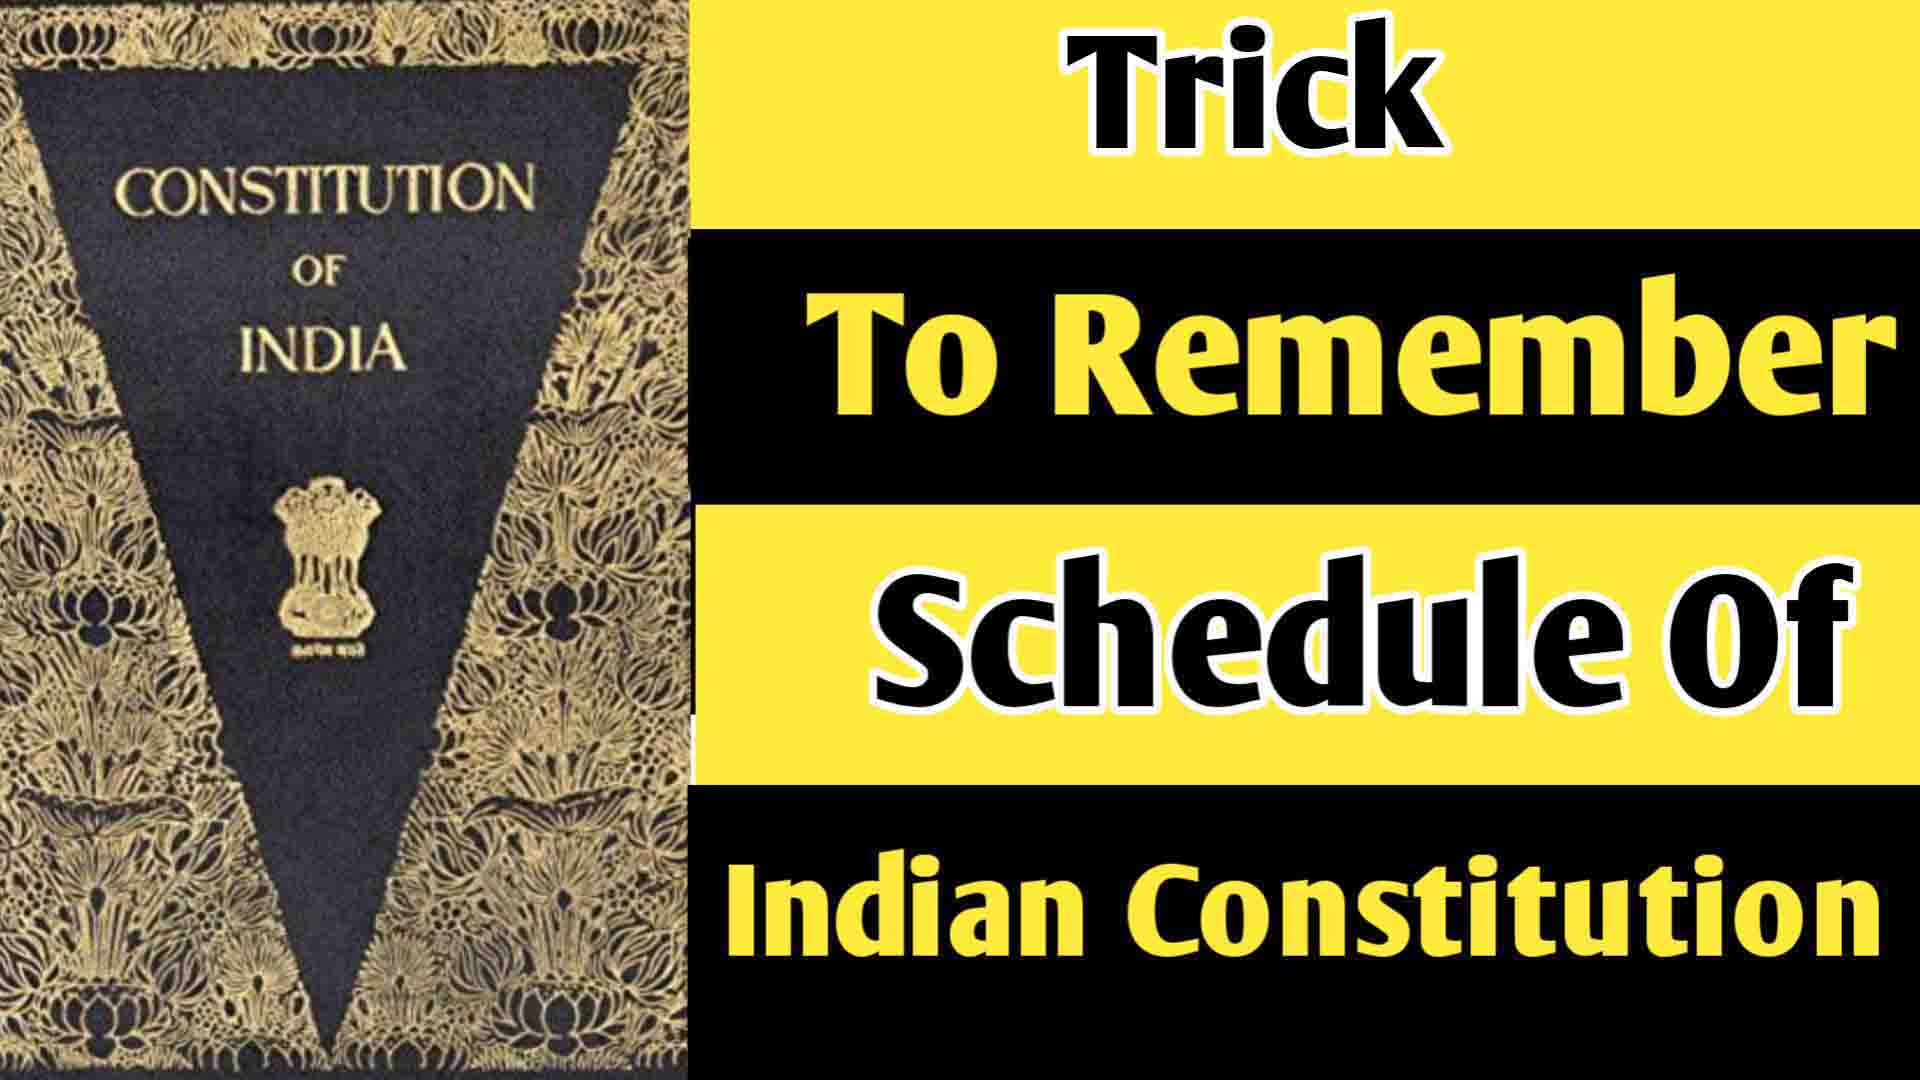 Tears Of Old PM Trick to Remember Schedules of Indian Constitution